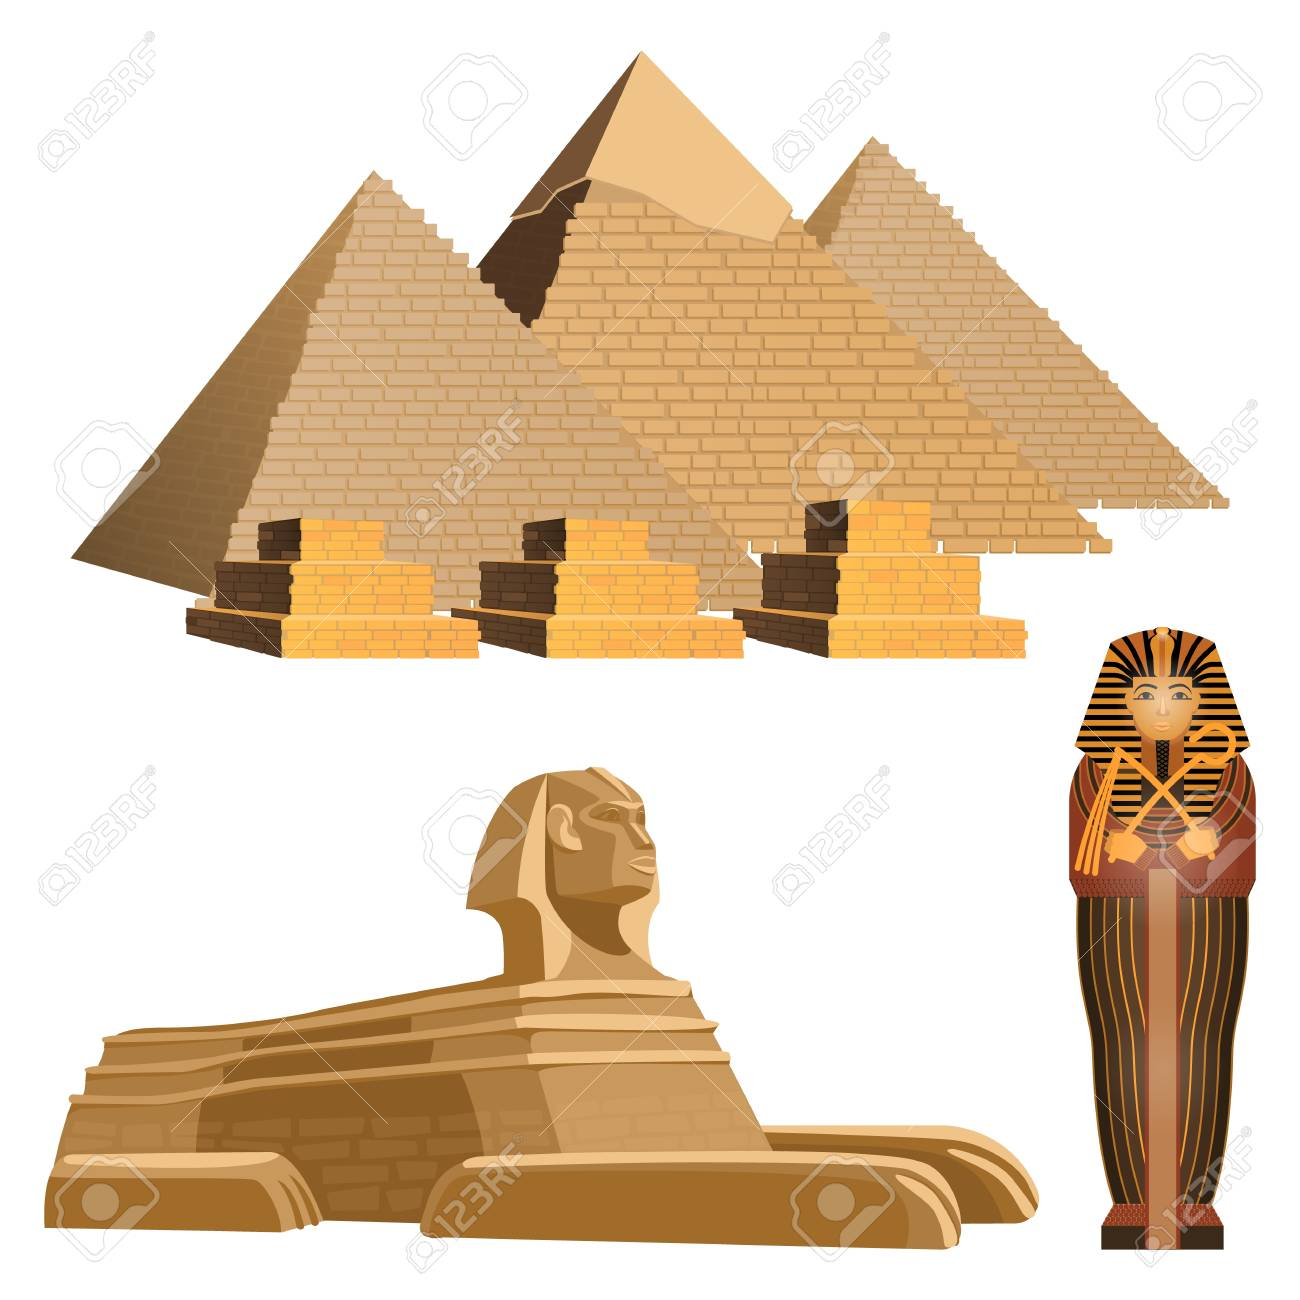 Egyptian pyramids, ancient sphinx and sarcophagus of pharaoh.